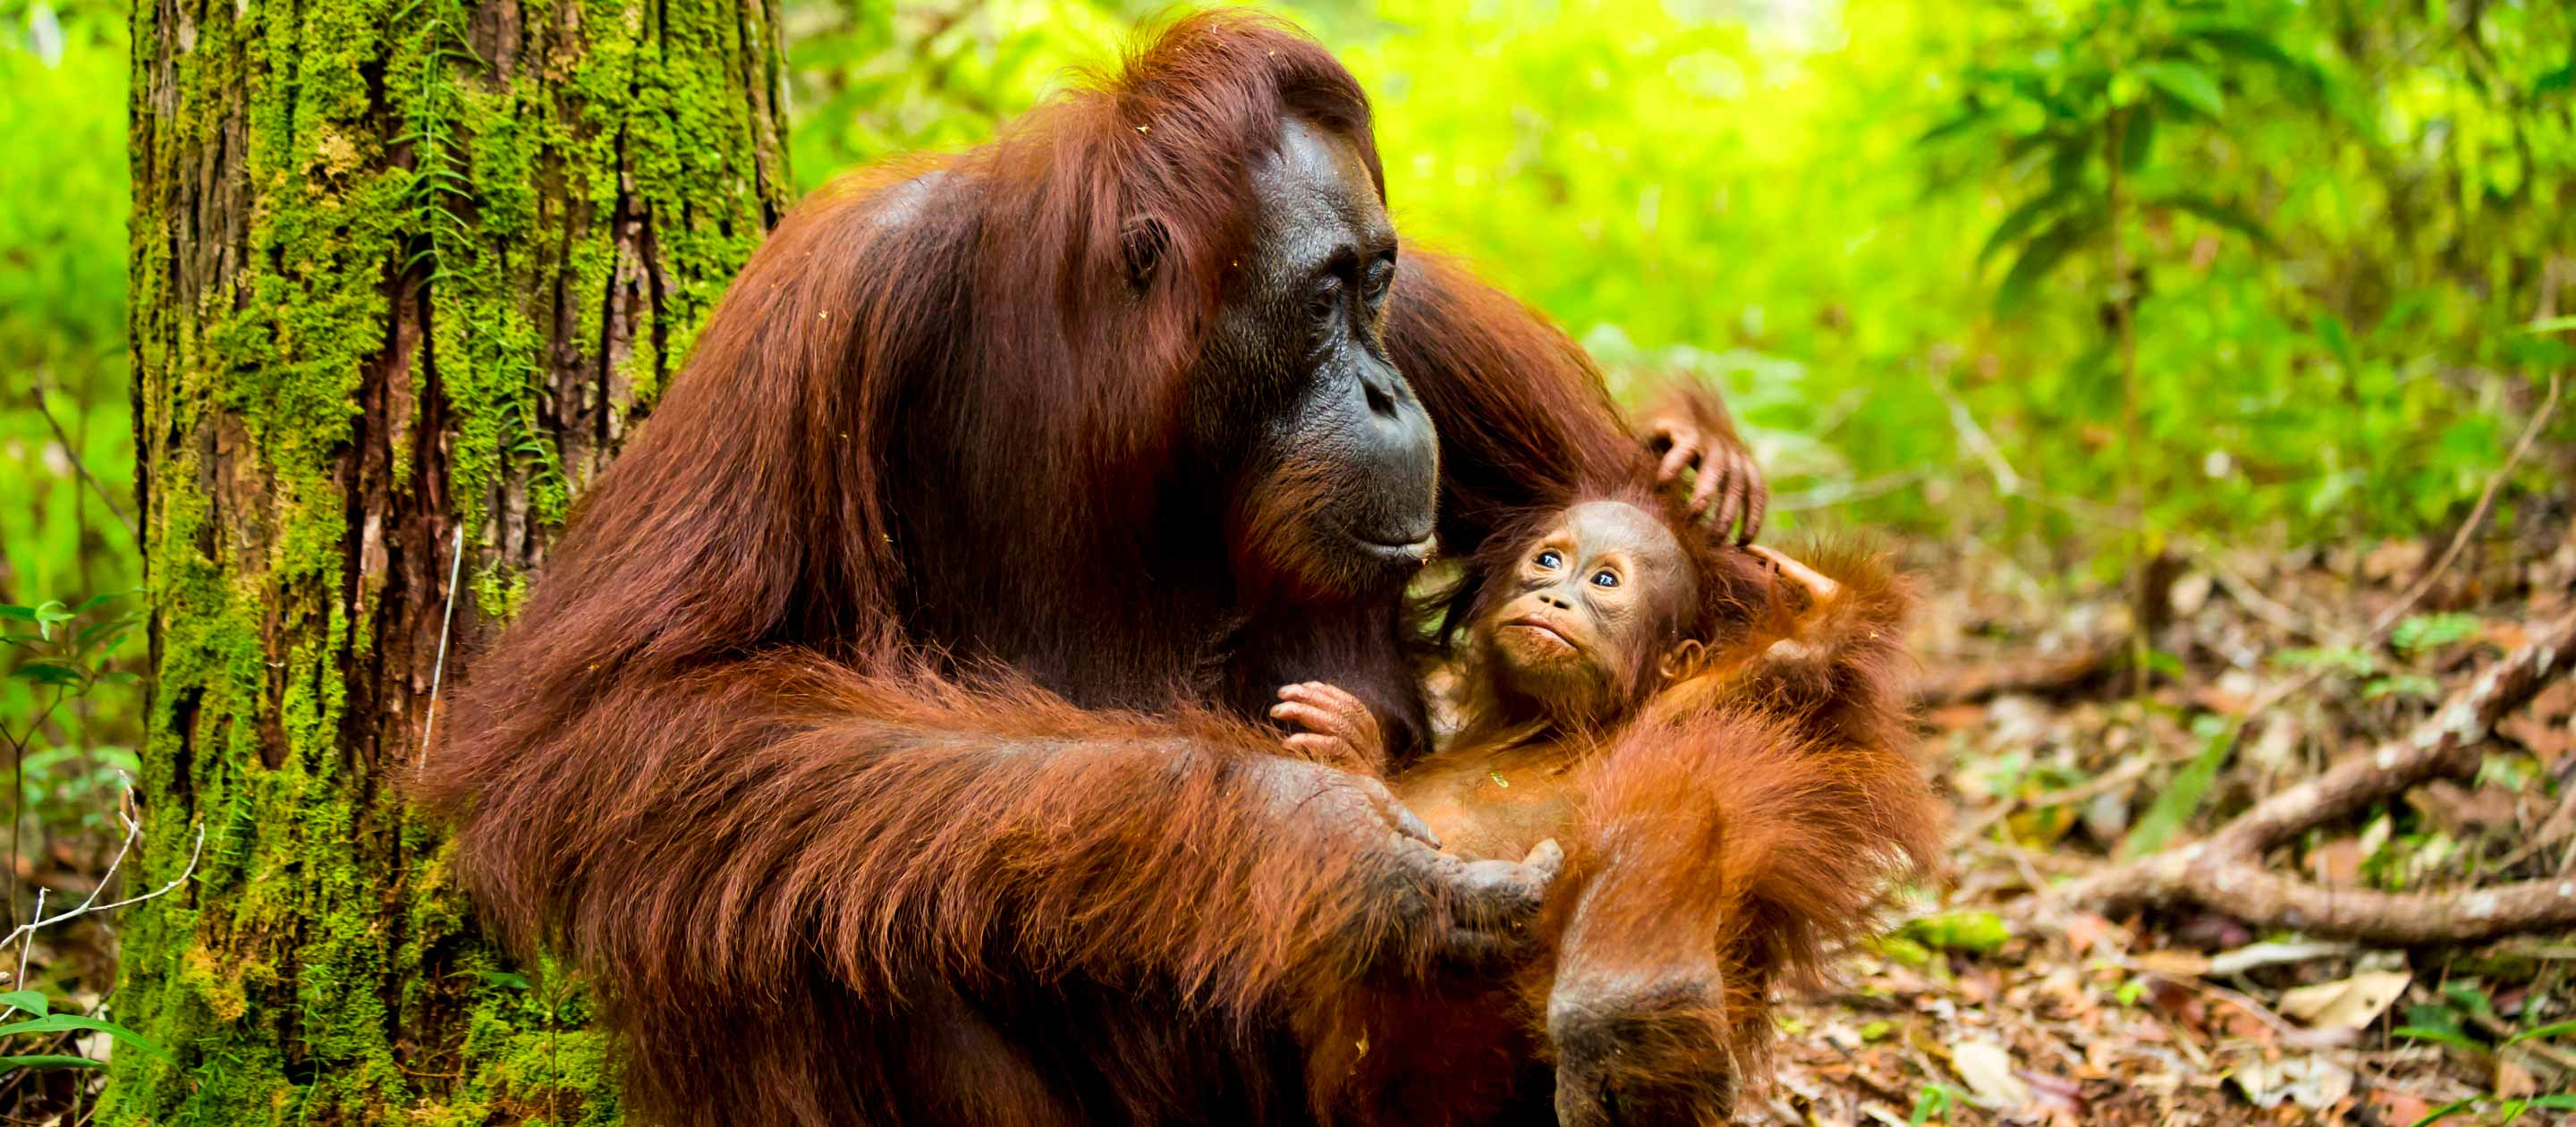 Mother and baby orangutan in Indonesia